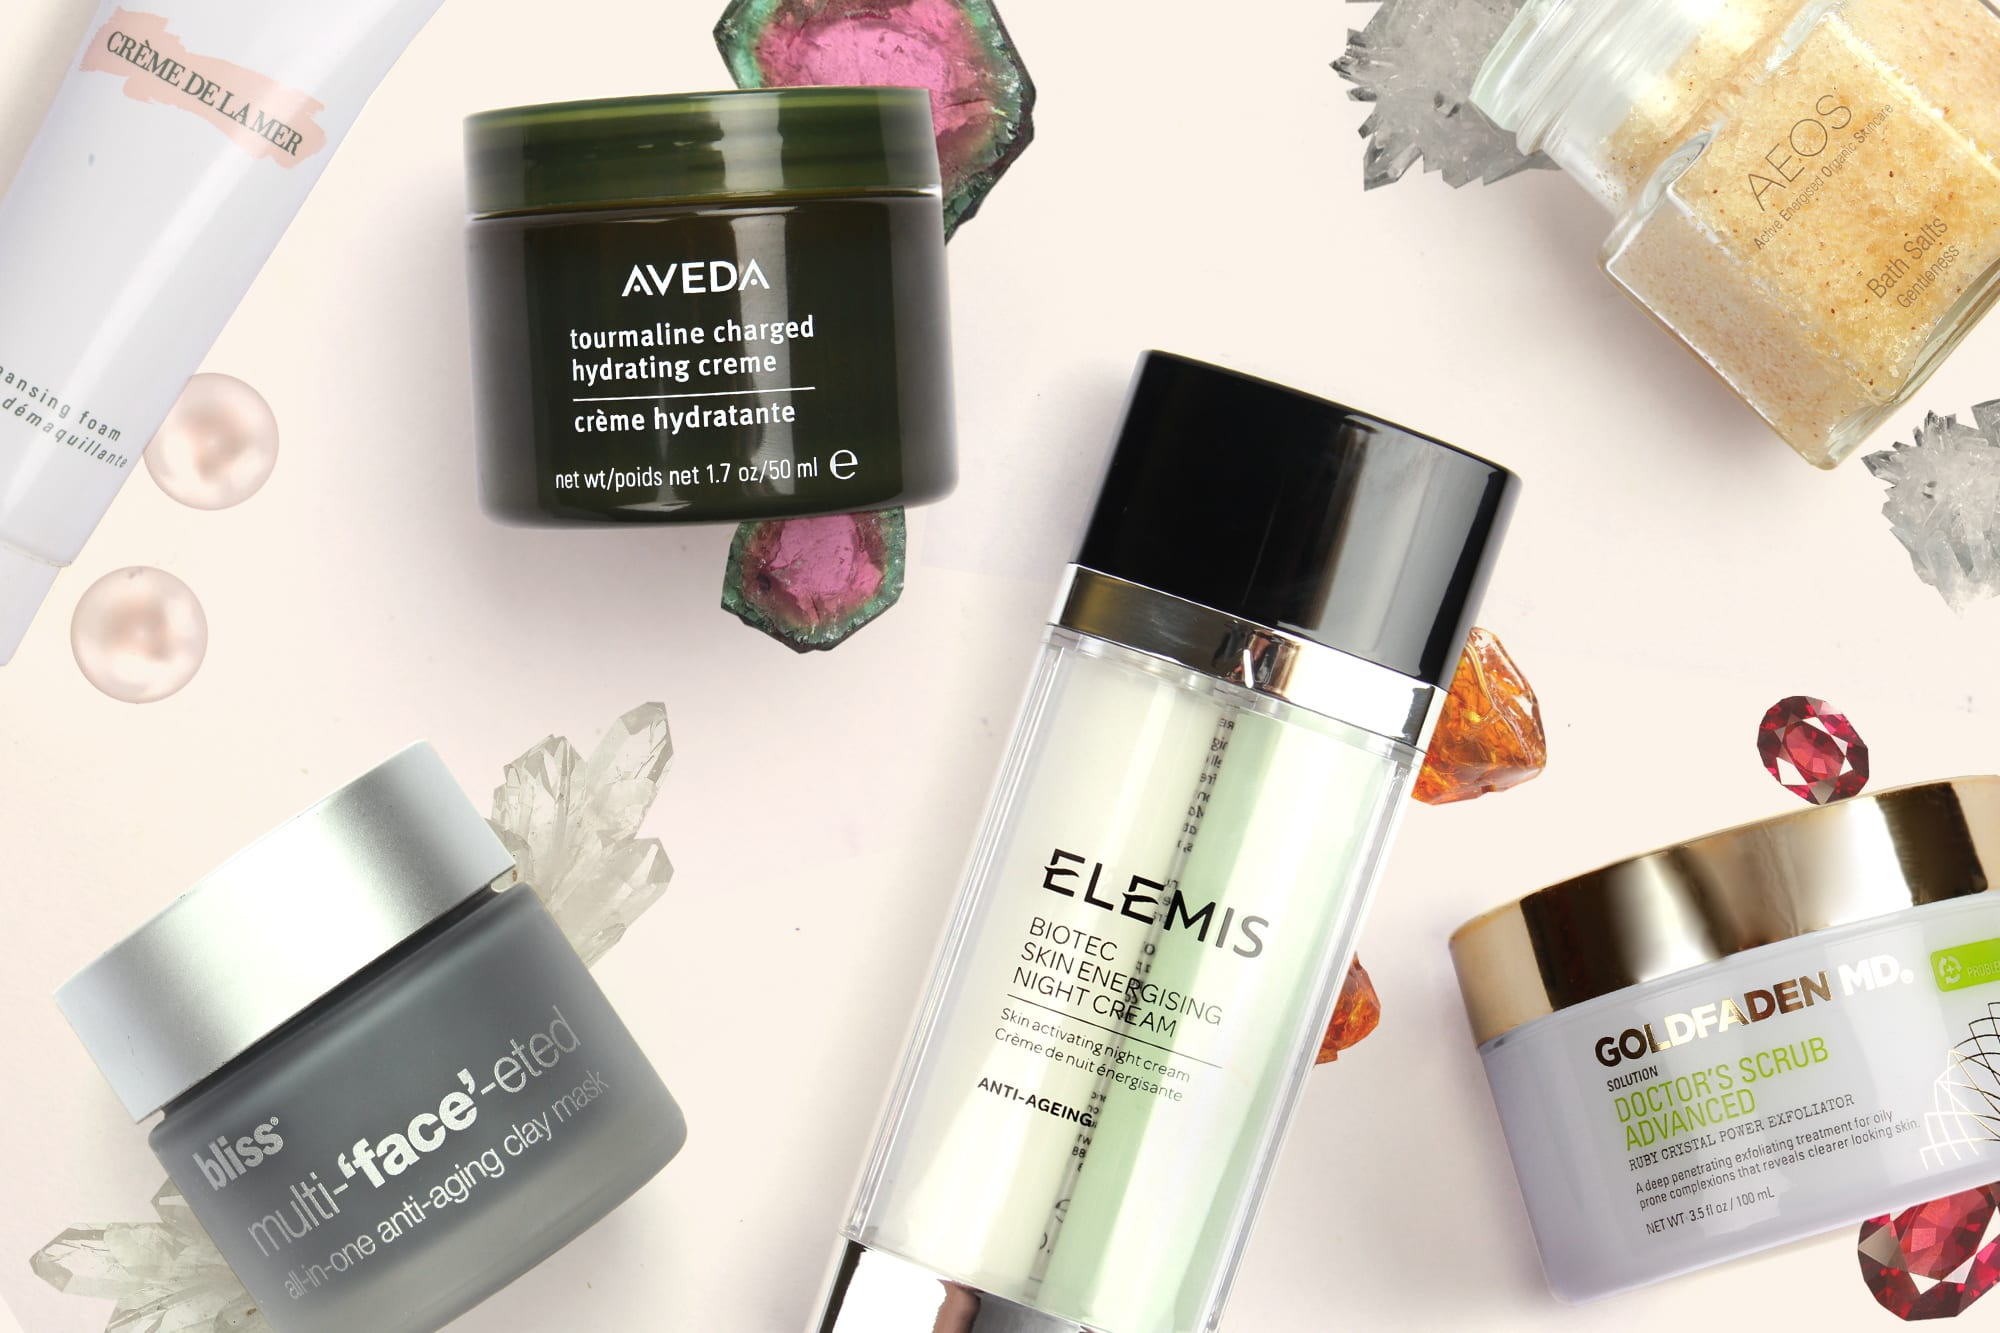 Crystal Maze: The Pros Of Gem-Infused Skincare